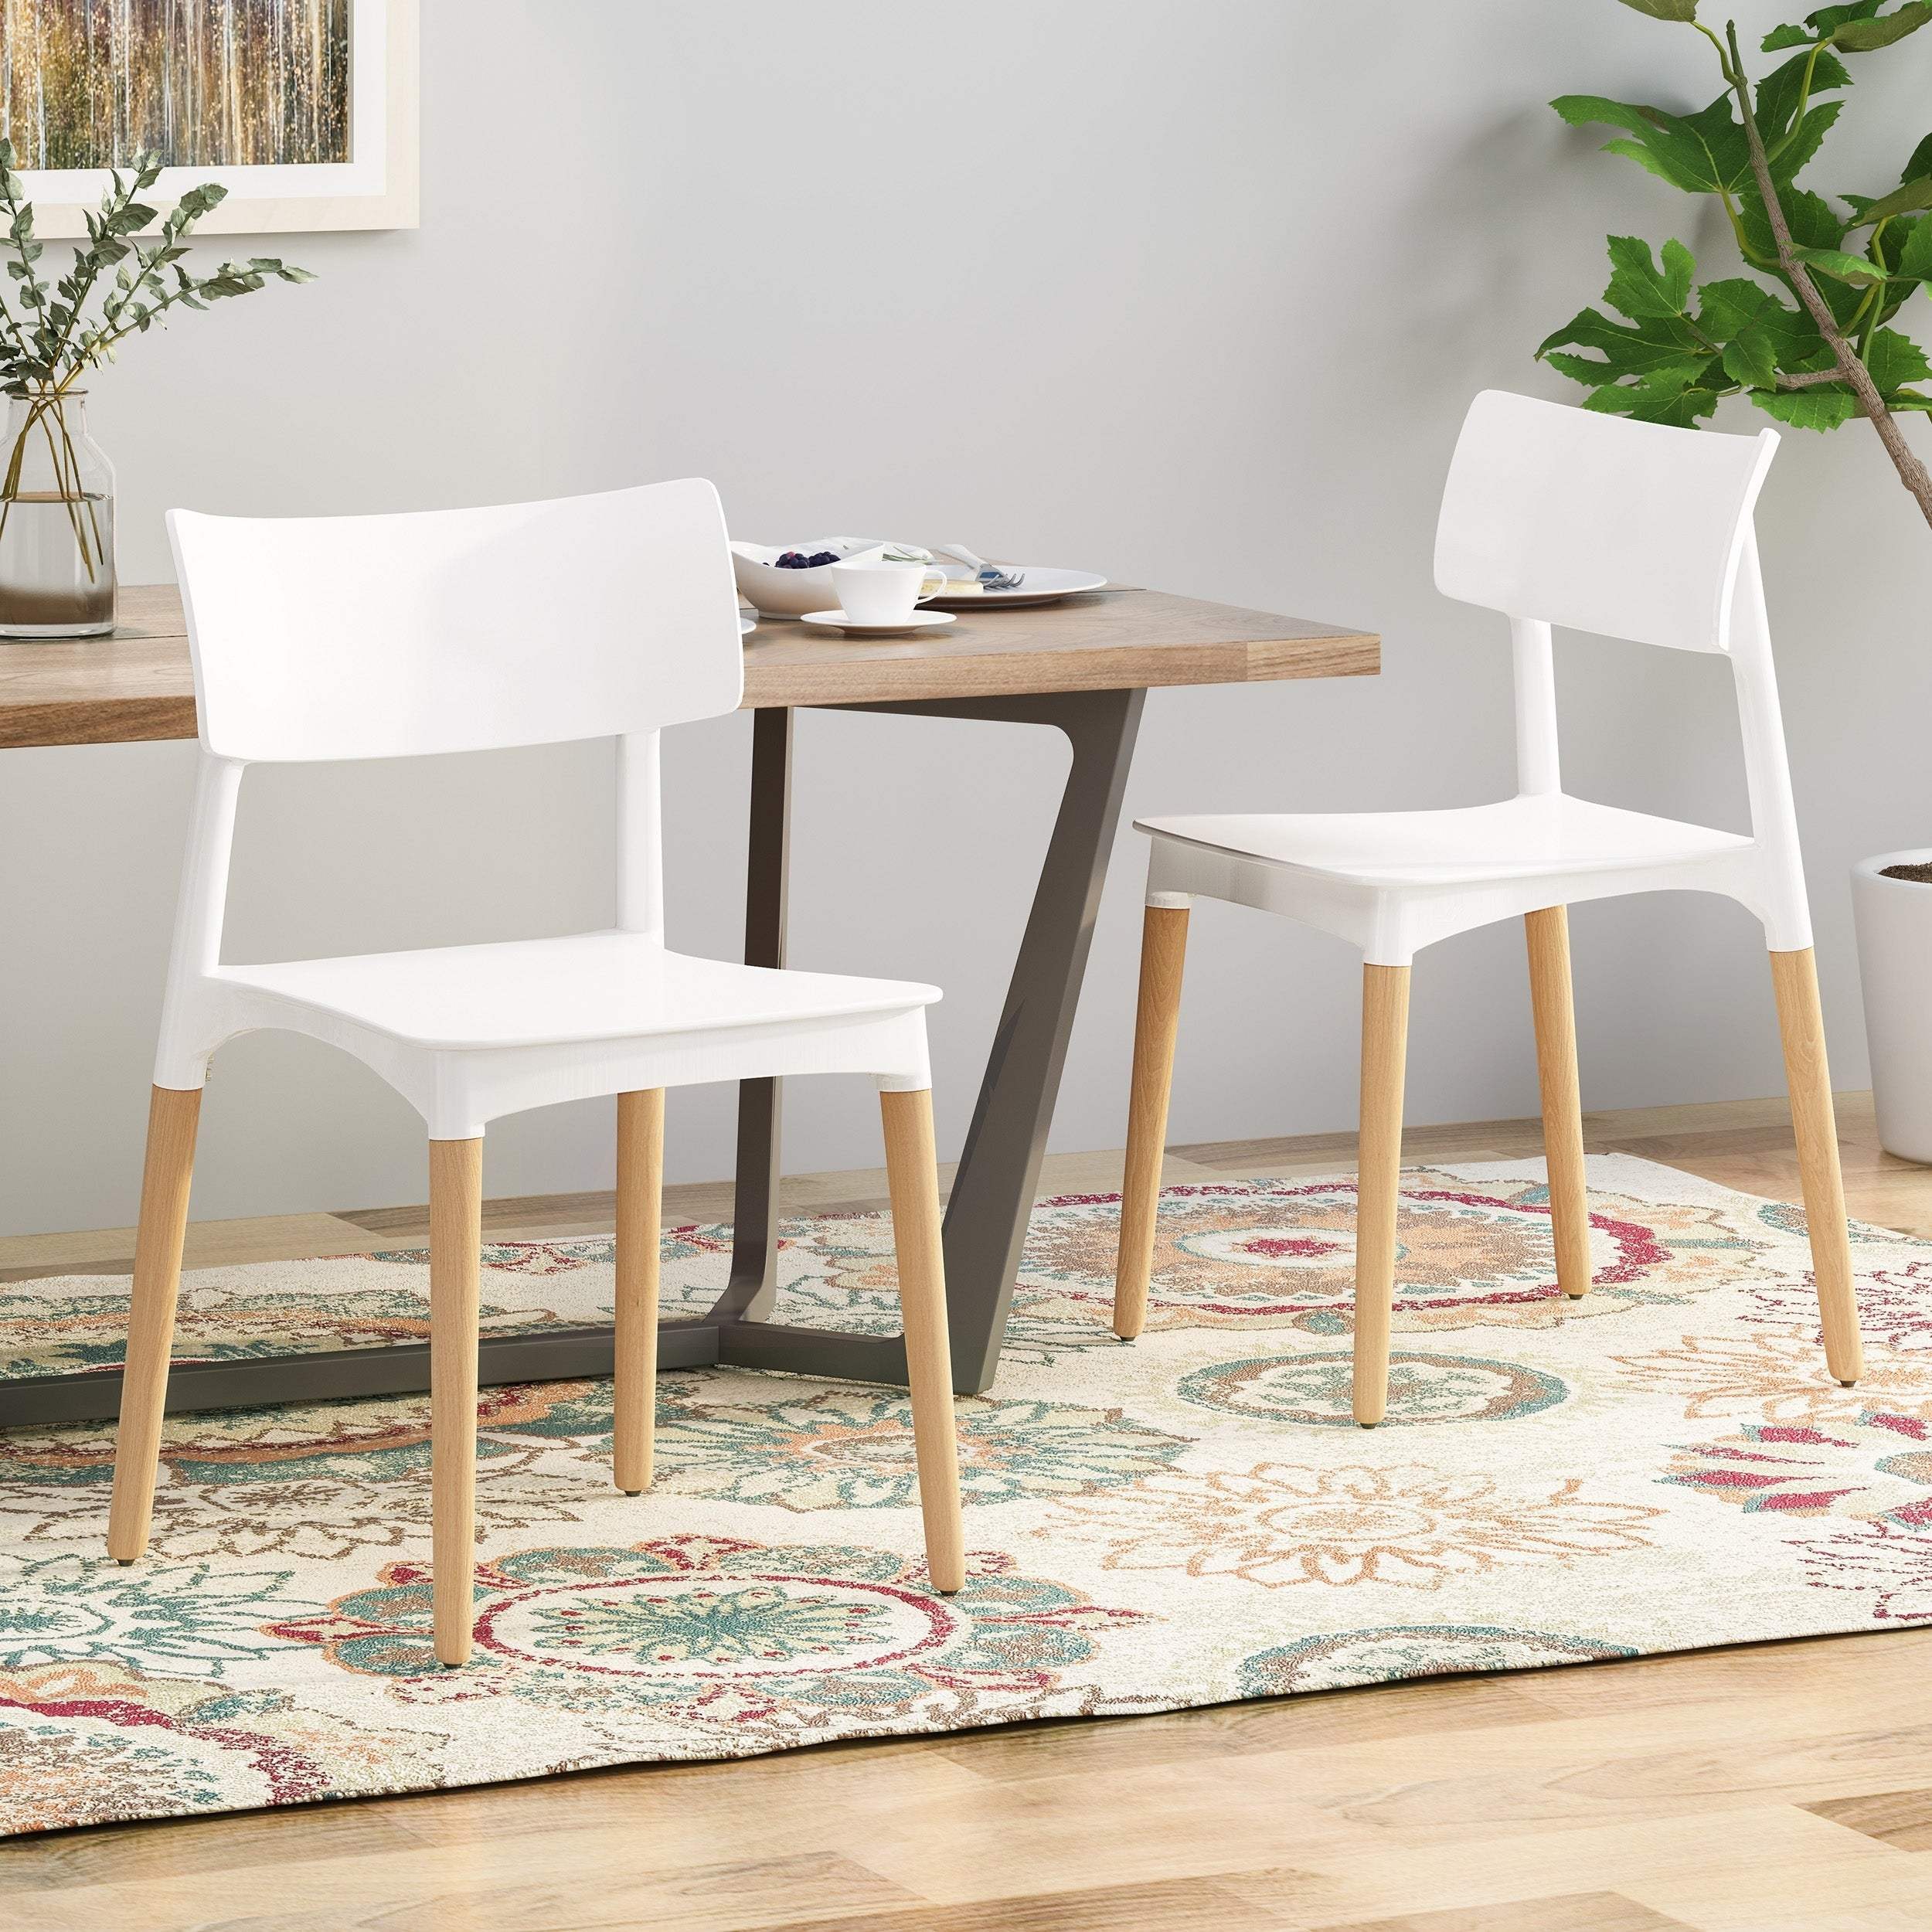 Dining Chair With Beech Wood Legs